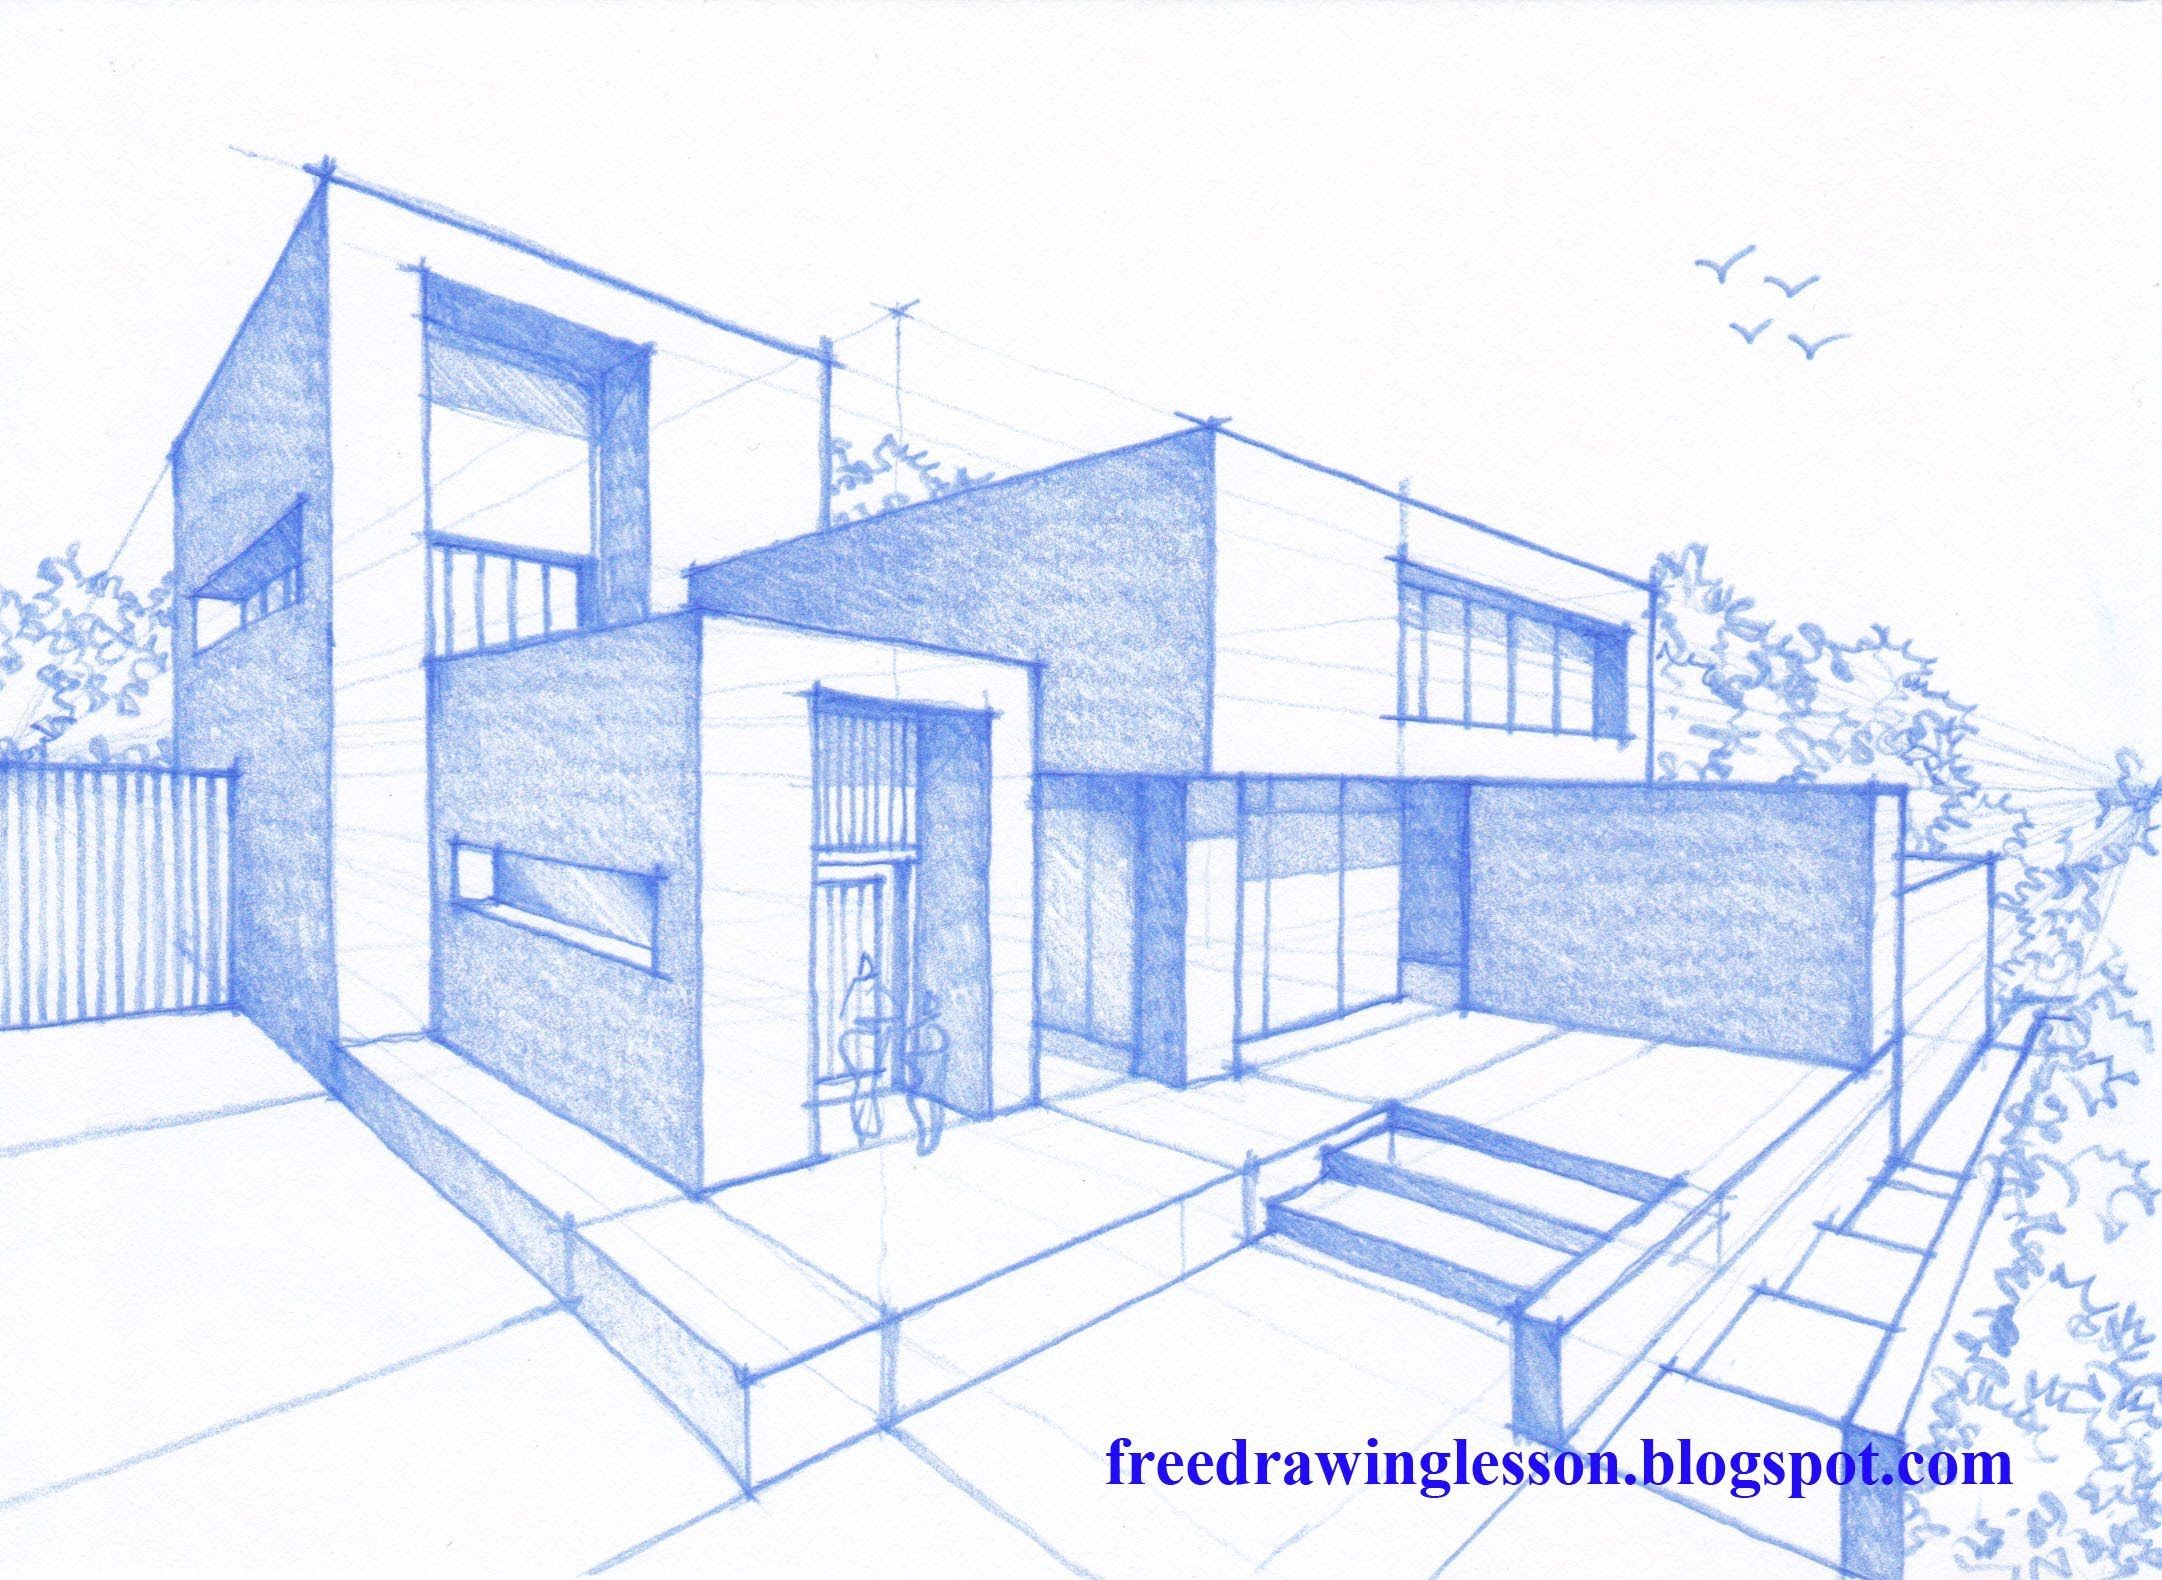 Let Us Try To Draw This House Design By Following The Step By Step Process In The Video Good